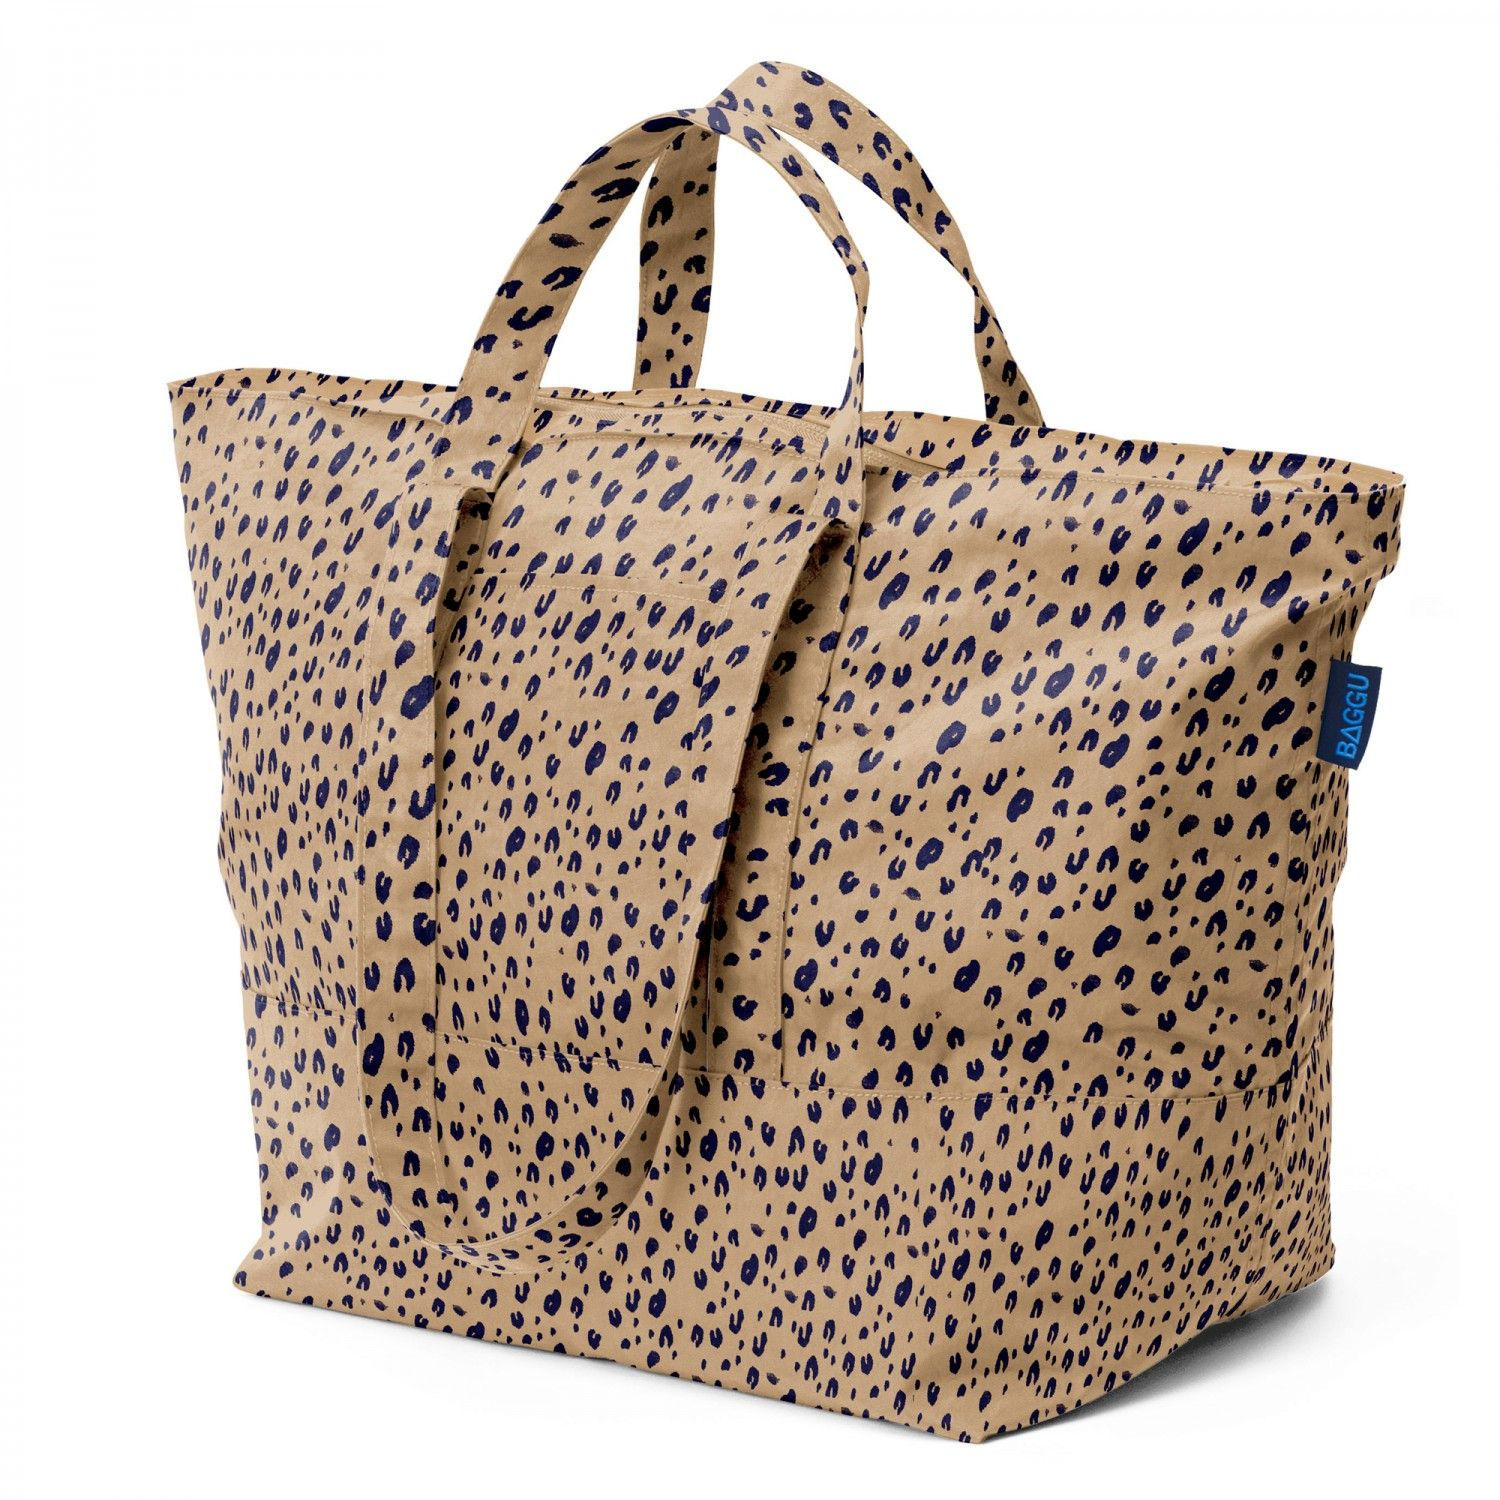 A Stylish Something- A guide to the most fashionable shopper & tote bags around.